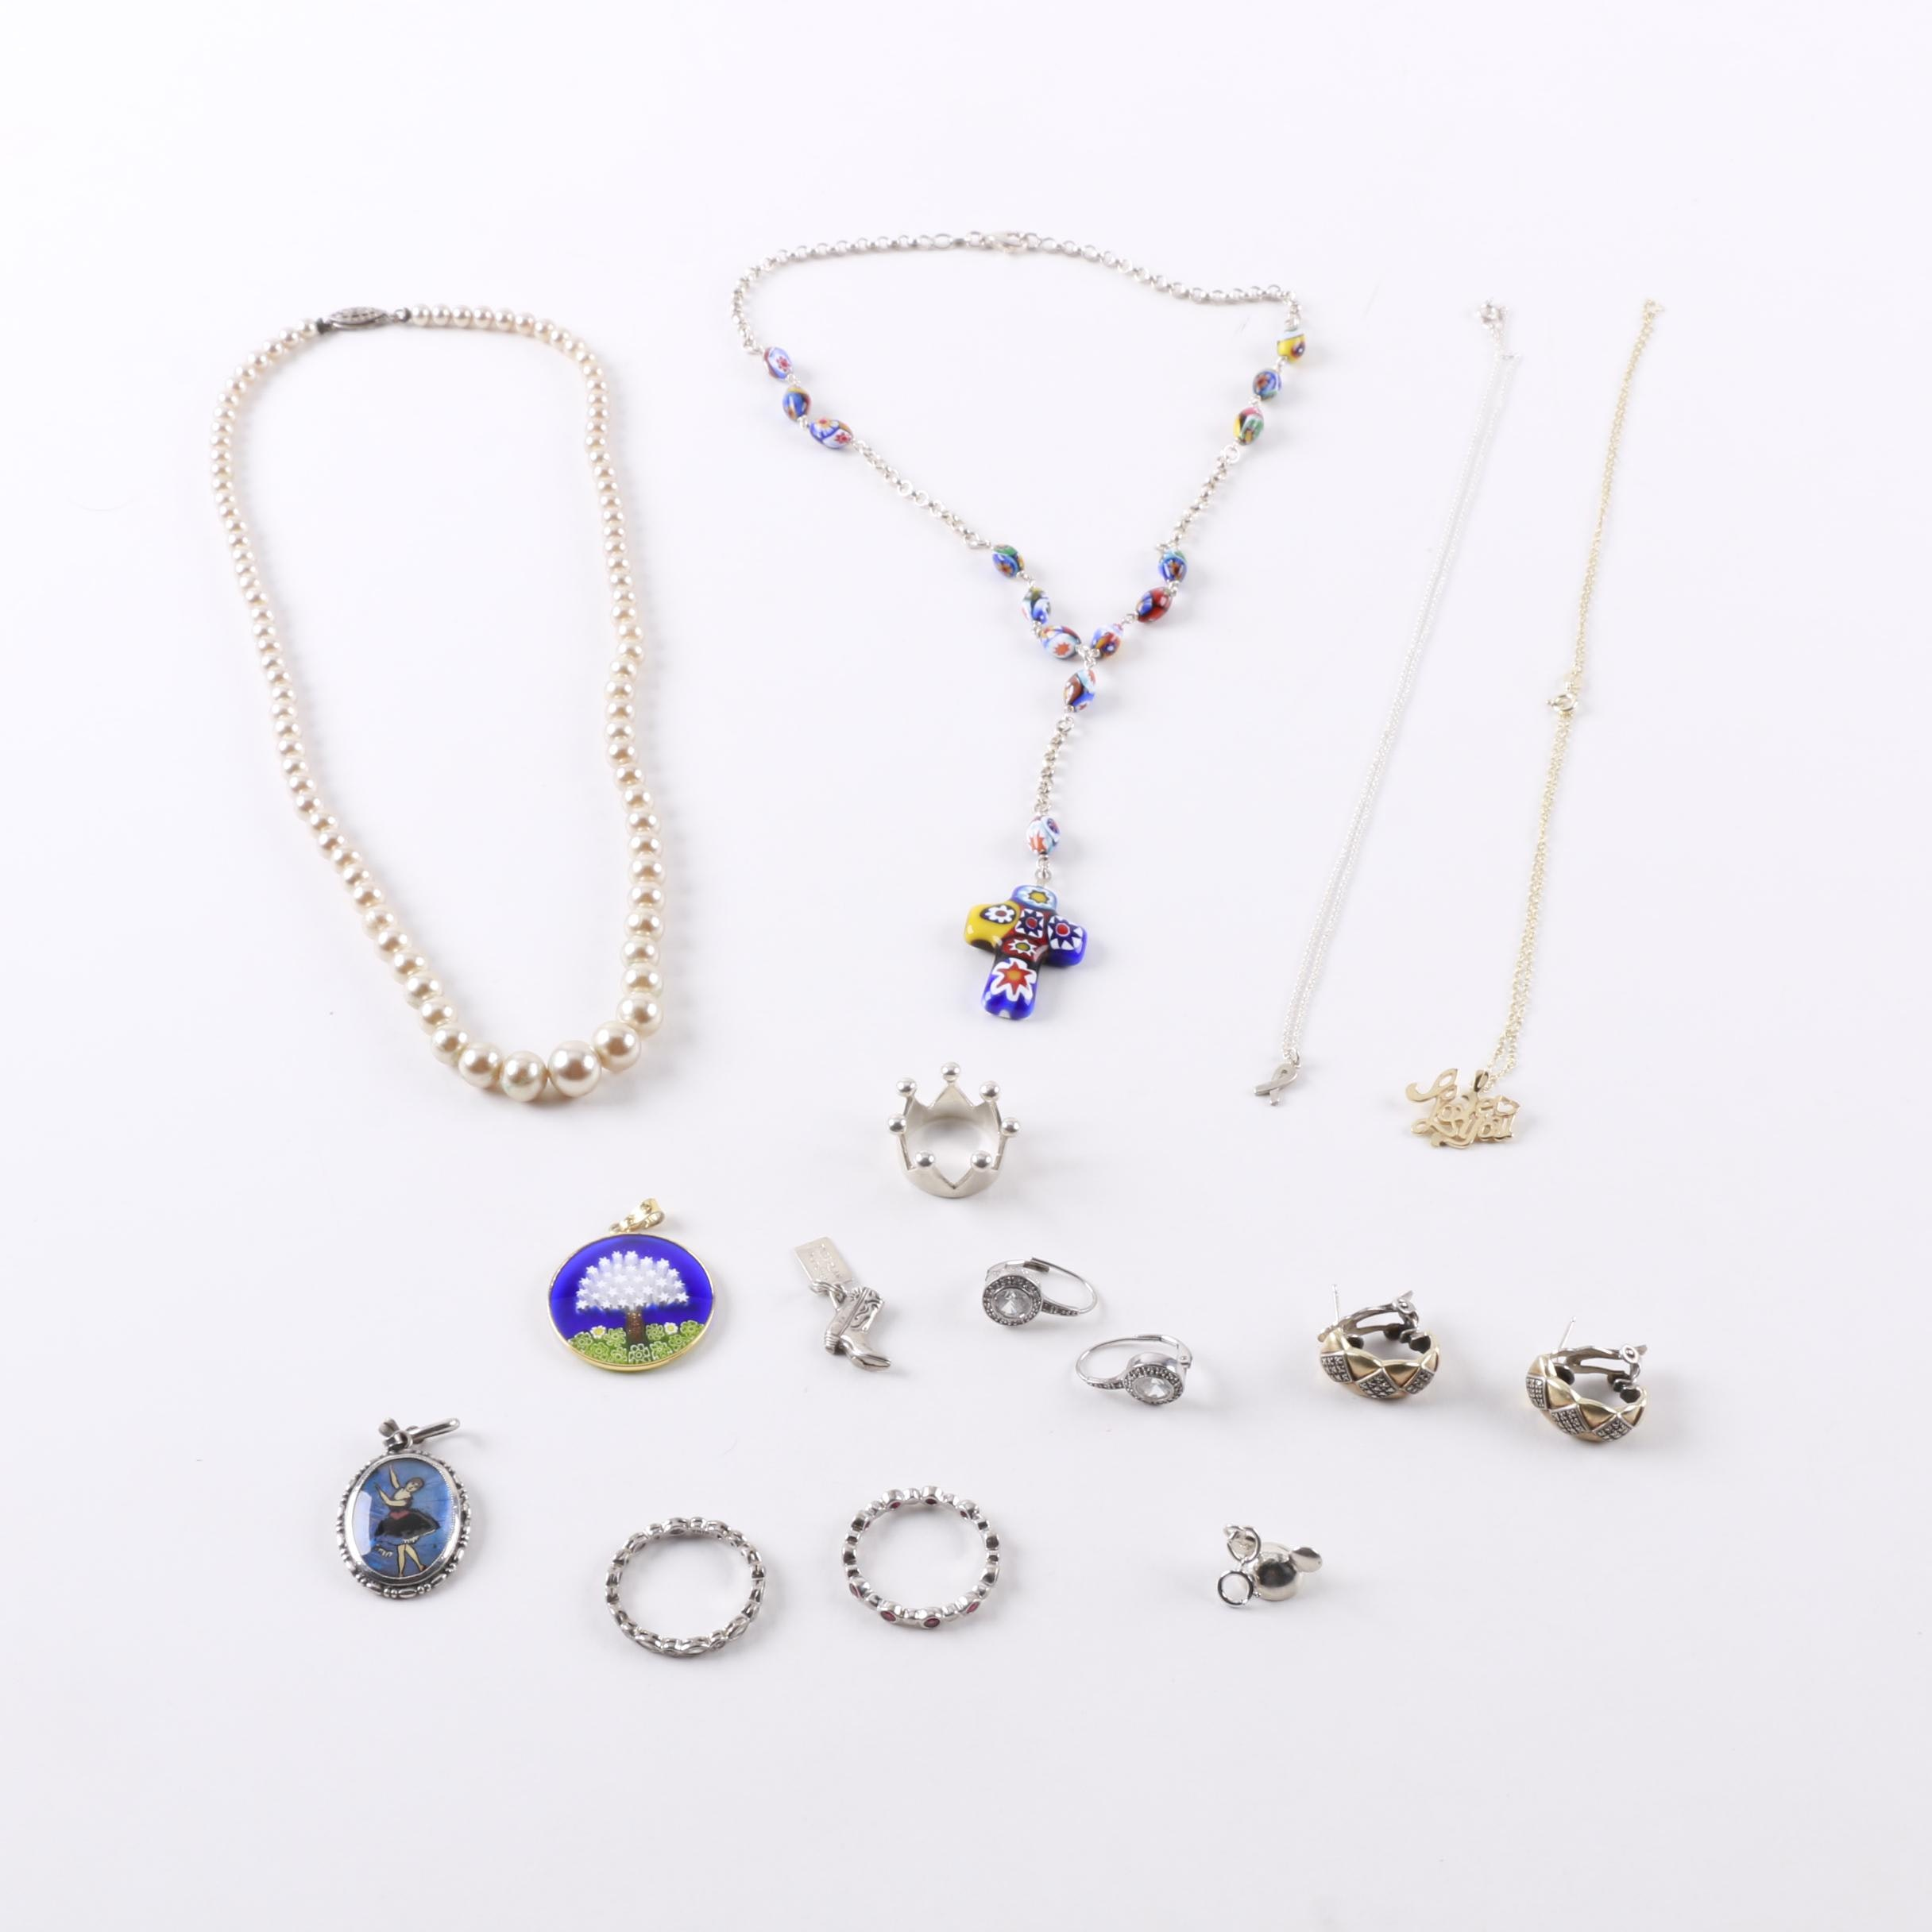 Costume Jewelry Assortment Including Sterling Silver and Millefiori